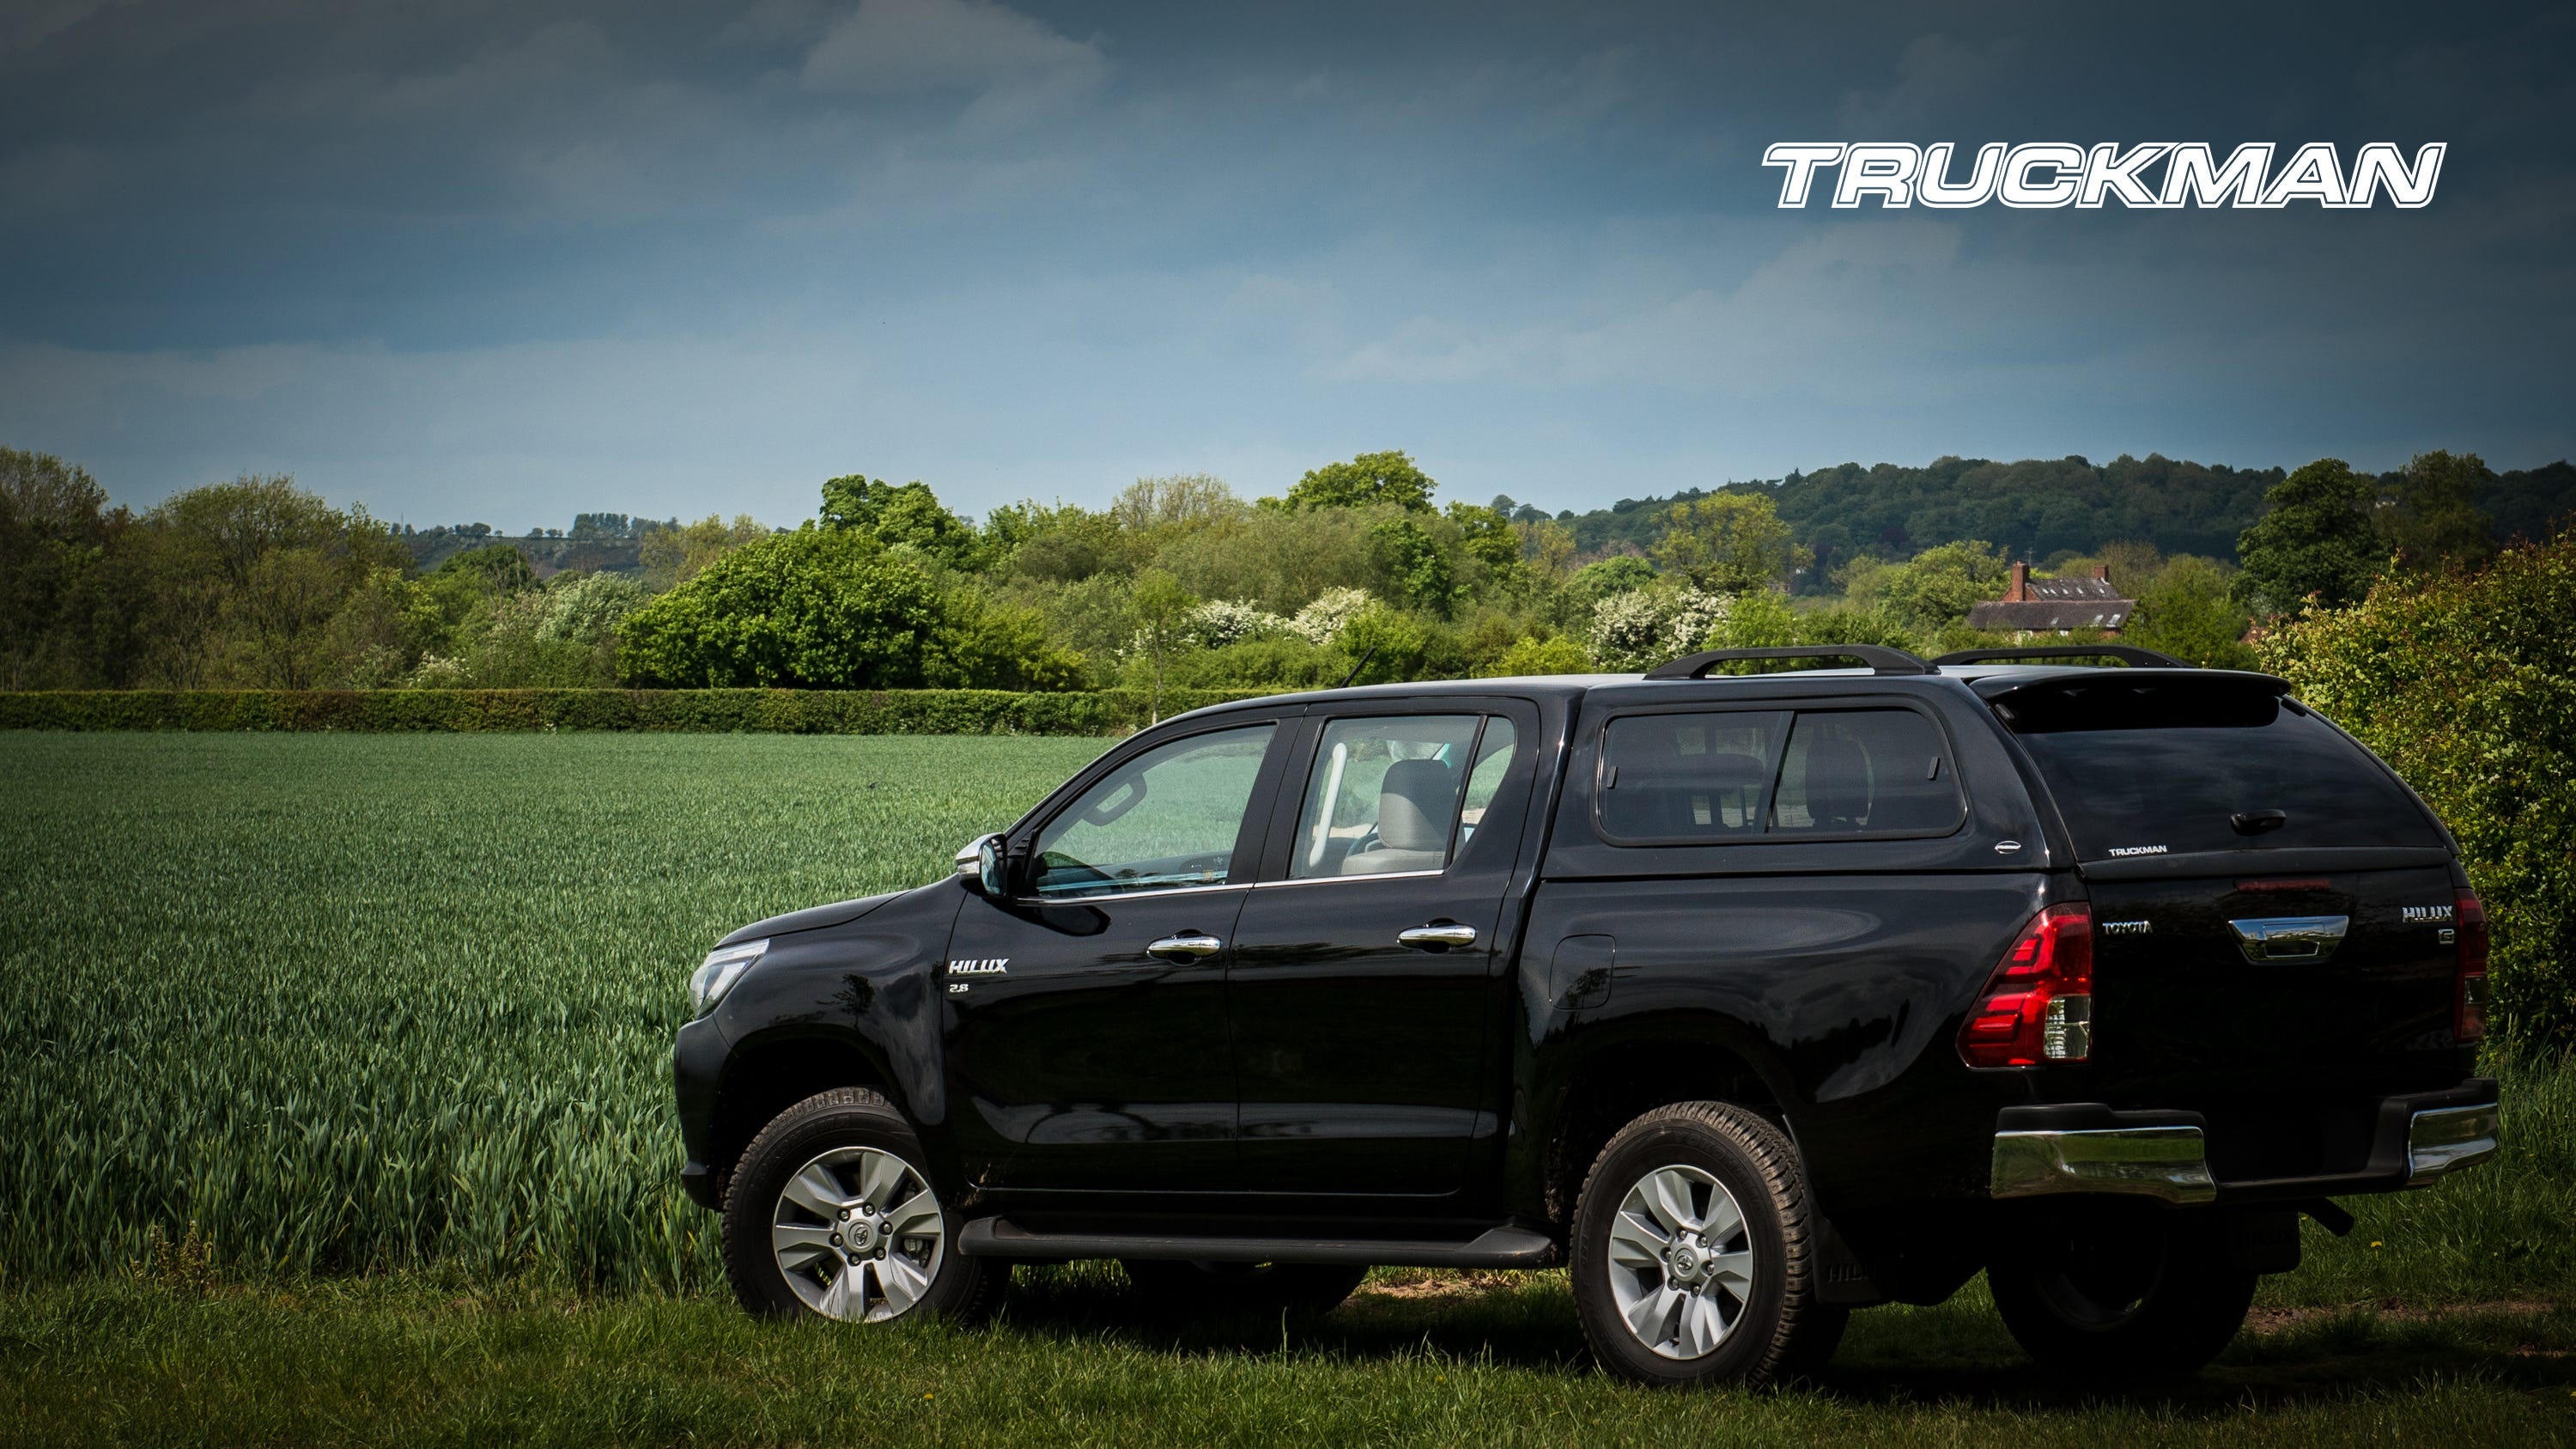 Toyota Hilux Double Cab Fitted With a Truckman GLS Hardtop Canopy (Landscape)